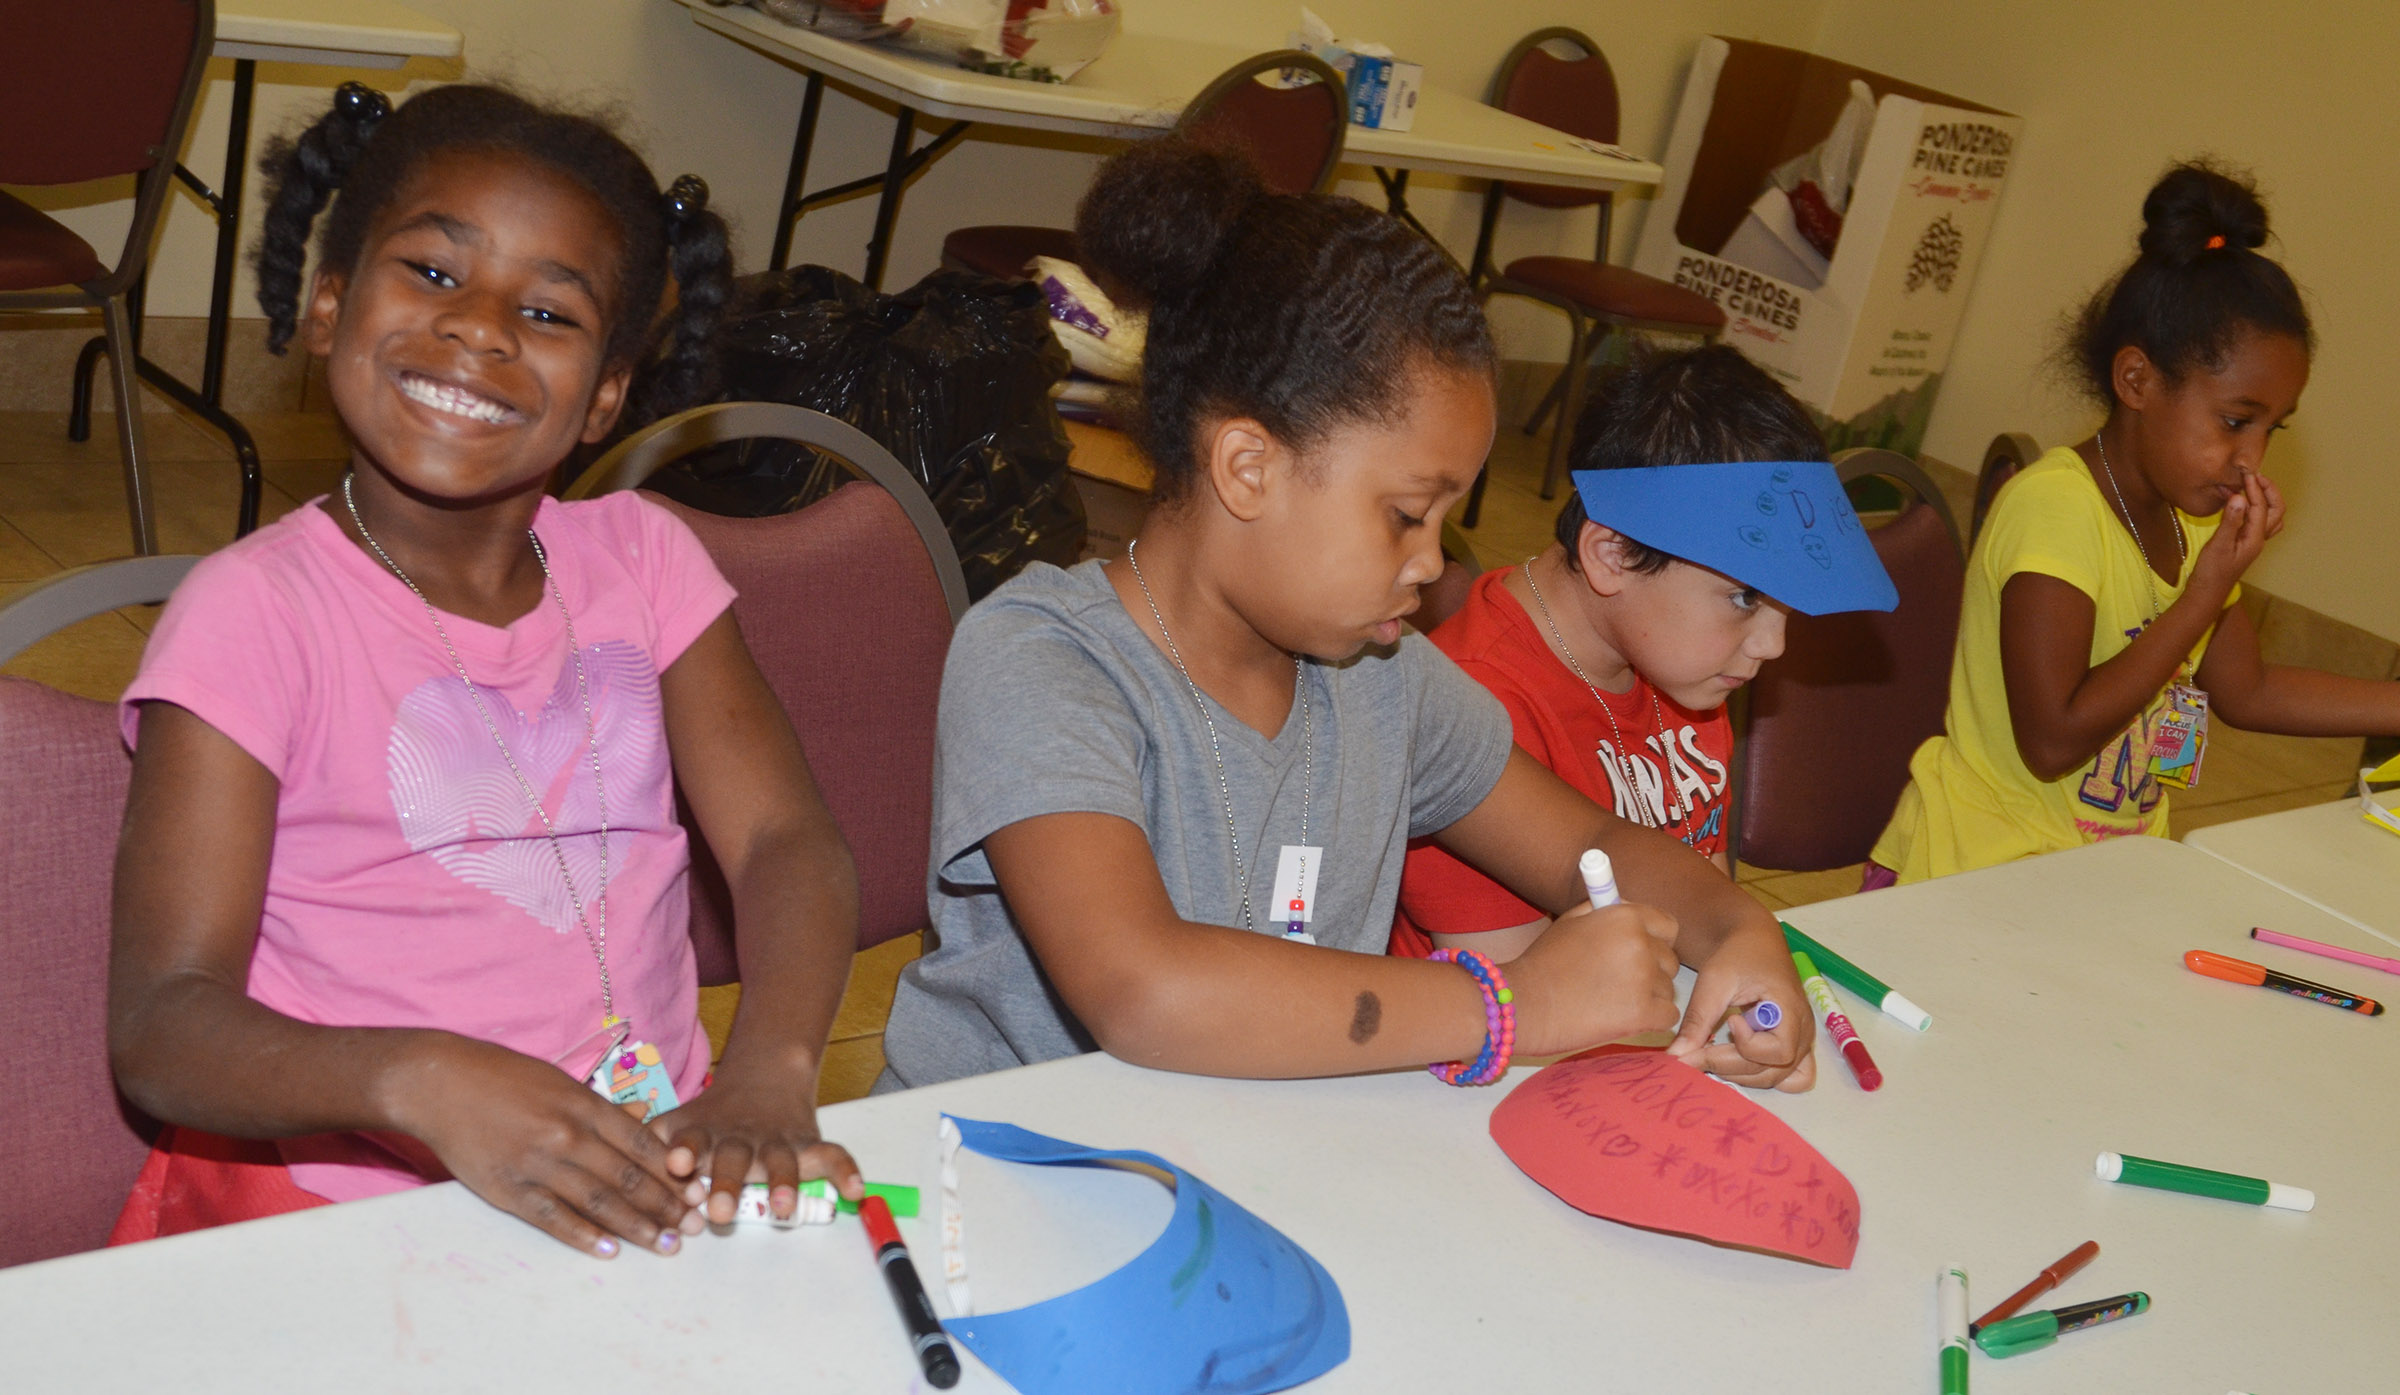 CES first-grader Destini Gholston is all smiles as she and her classmates make hats together.